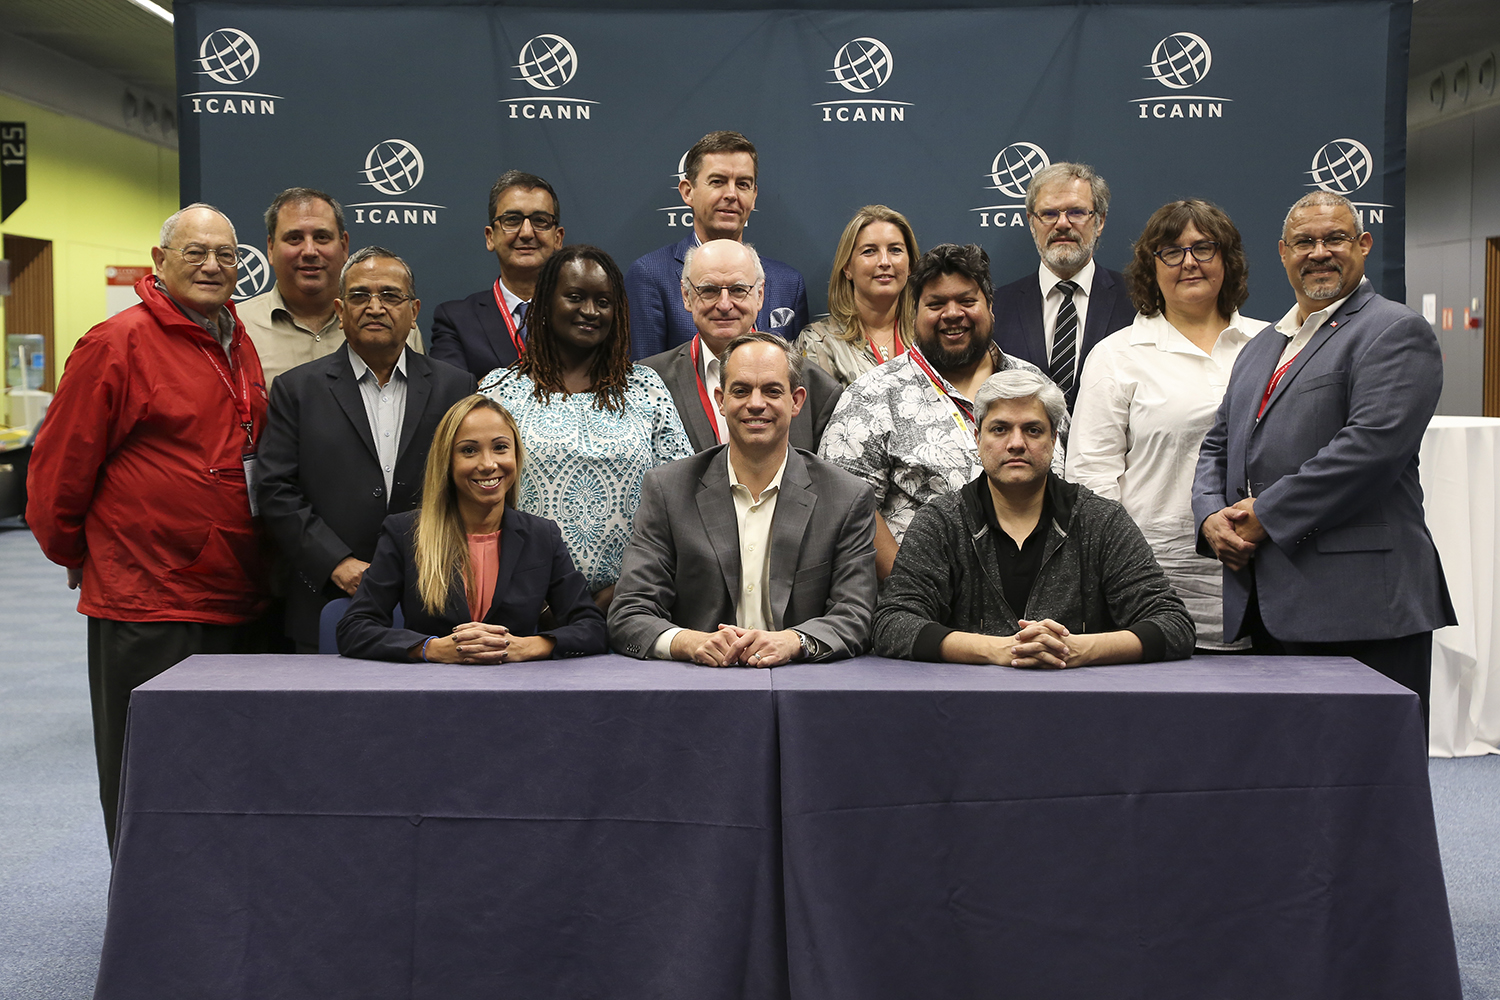 Group Photo of the 2019 Nominating Committee (NomCom) Members